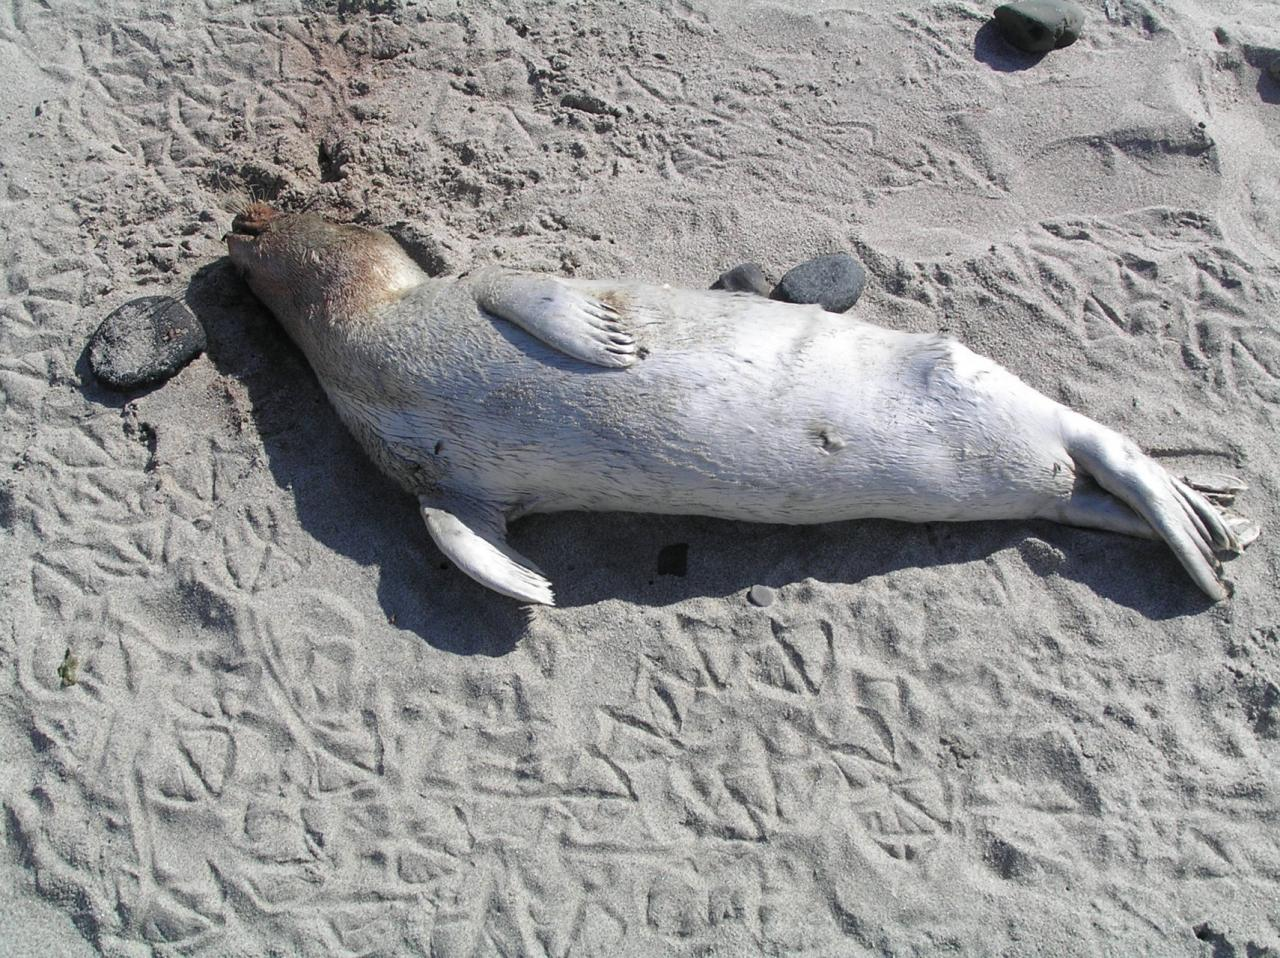 A young dead seal pup (about 3'long), beginning to deteriorate